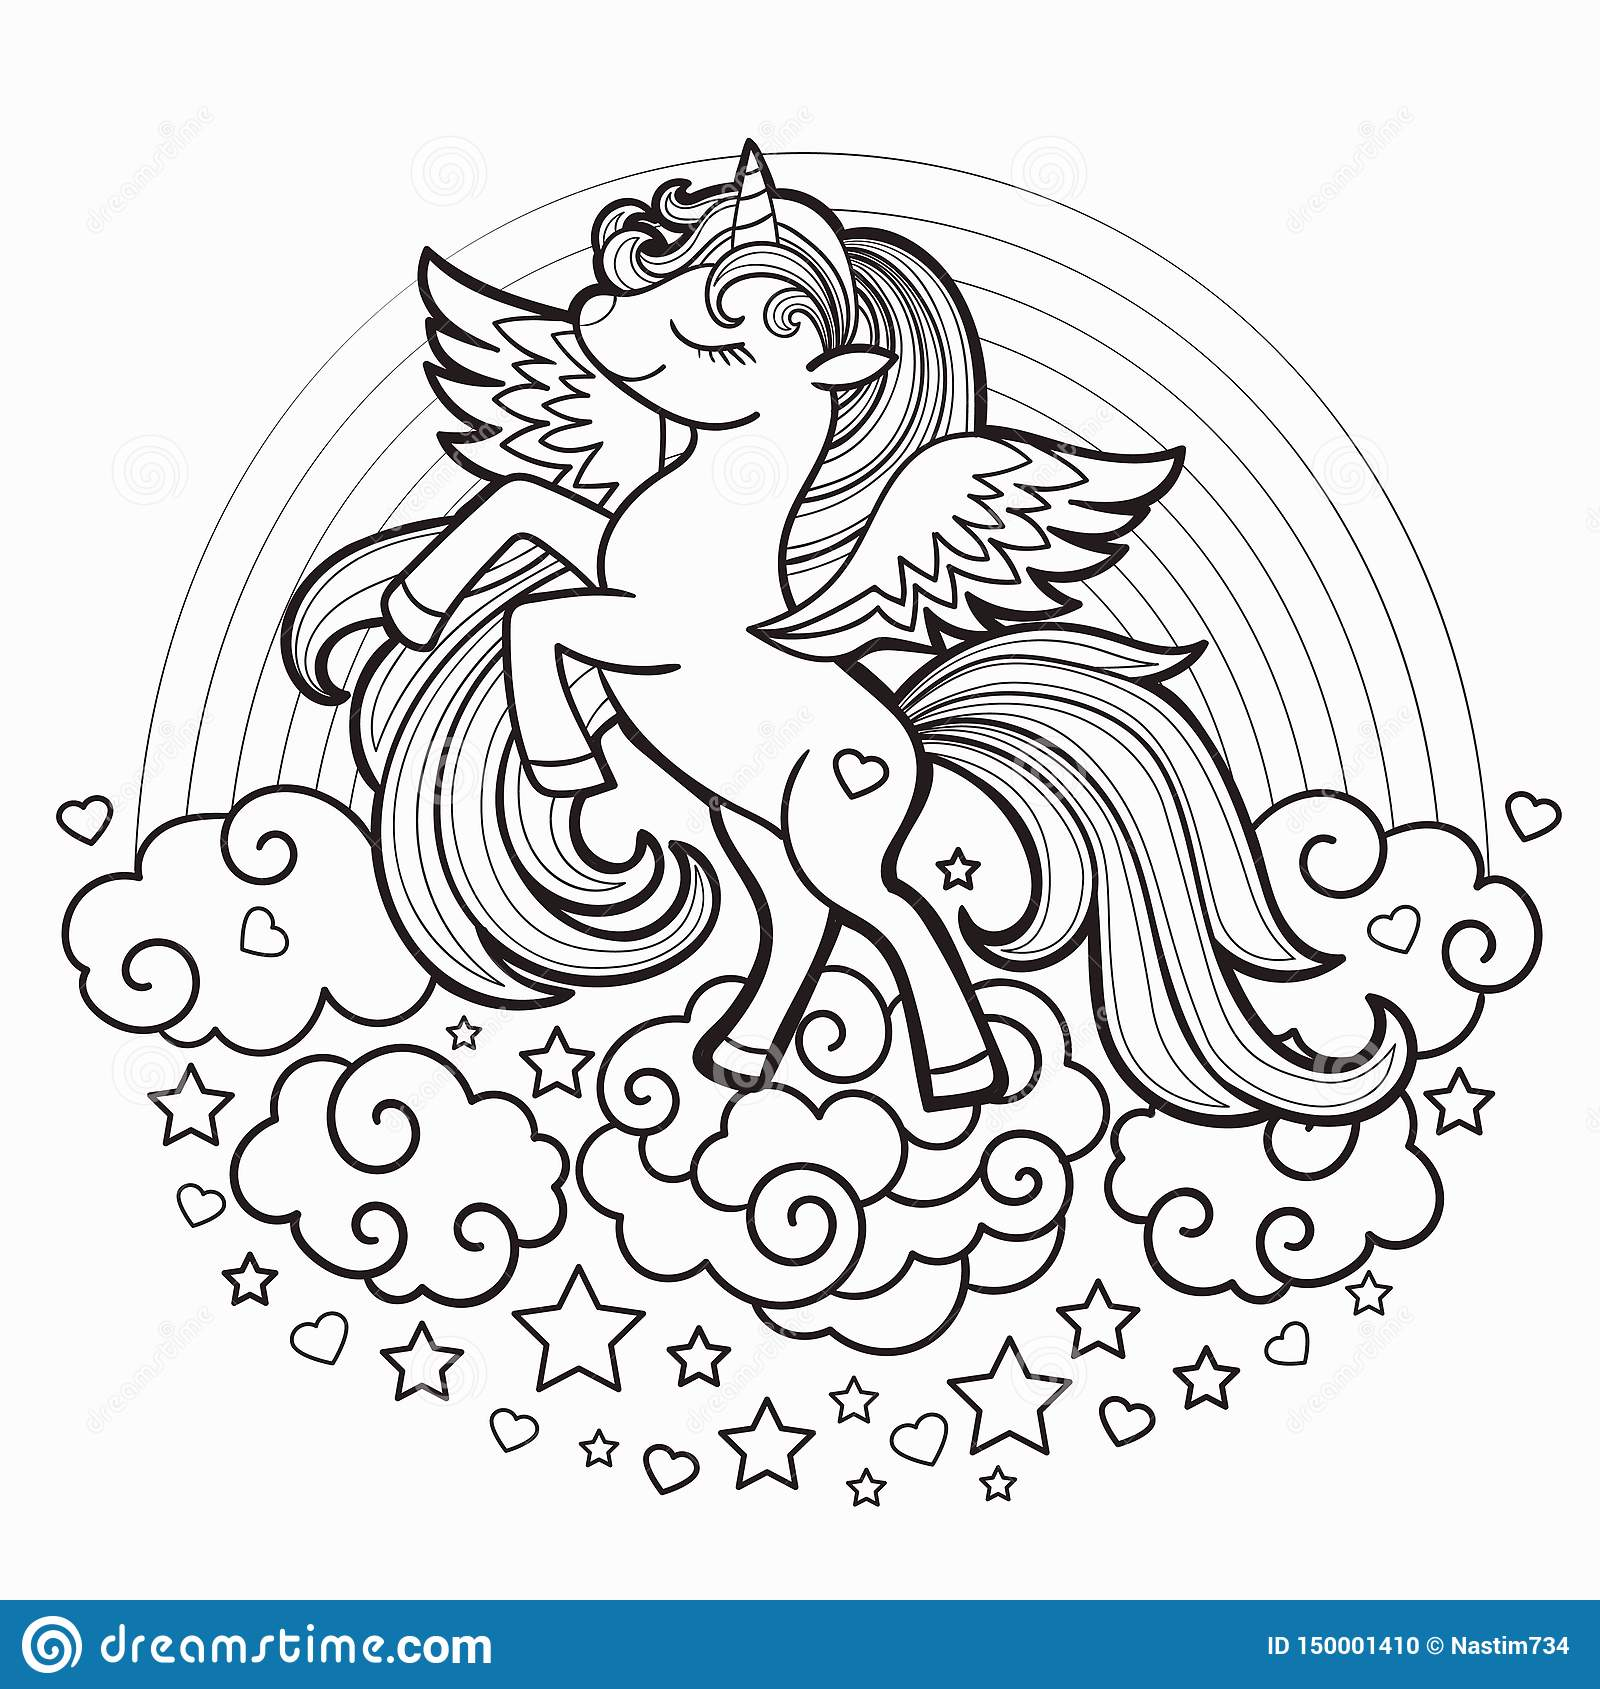 Cute Rainbow Unicorn Black And White Vector Illustration For Coloring Book Stock Vector Illustration Of Kids Contour 150001410